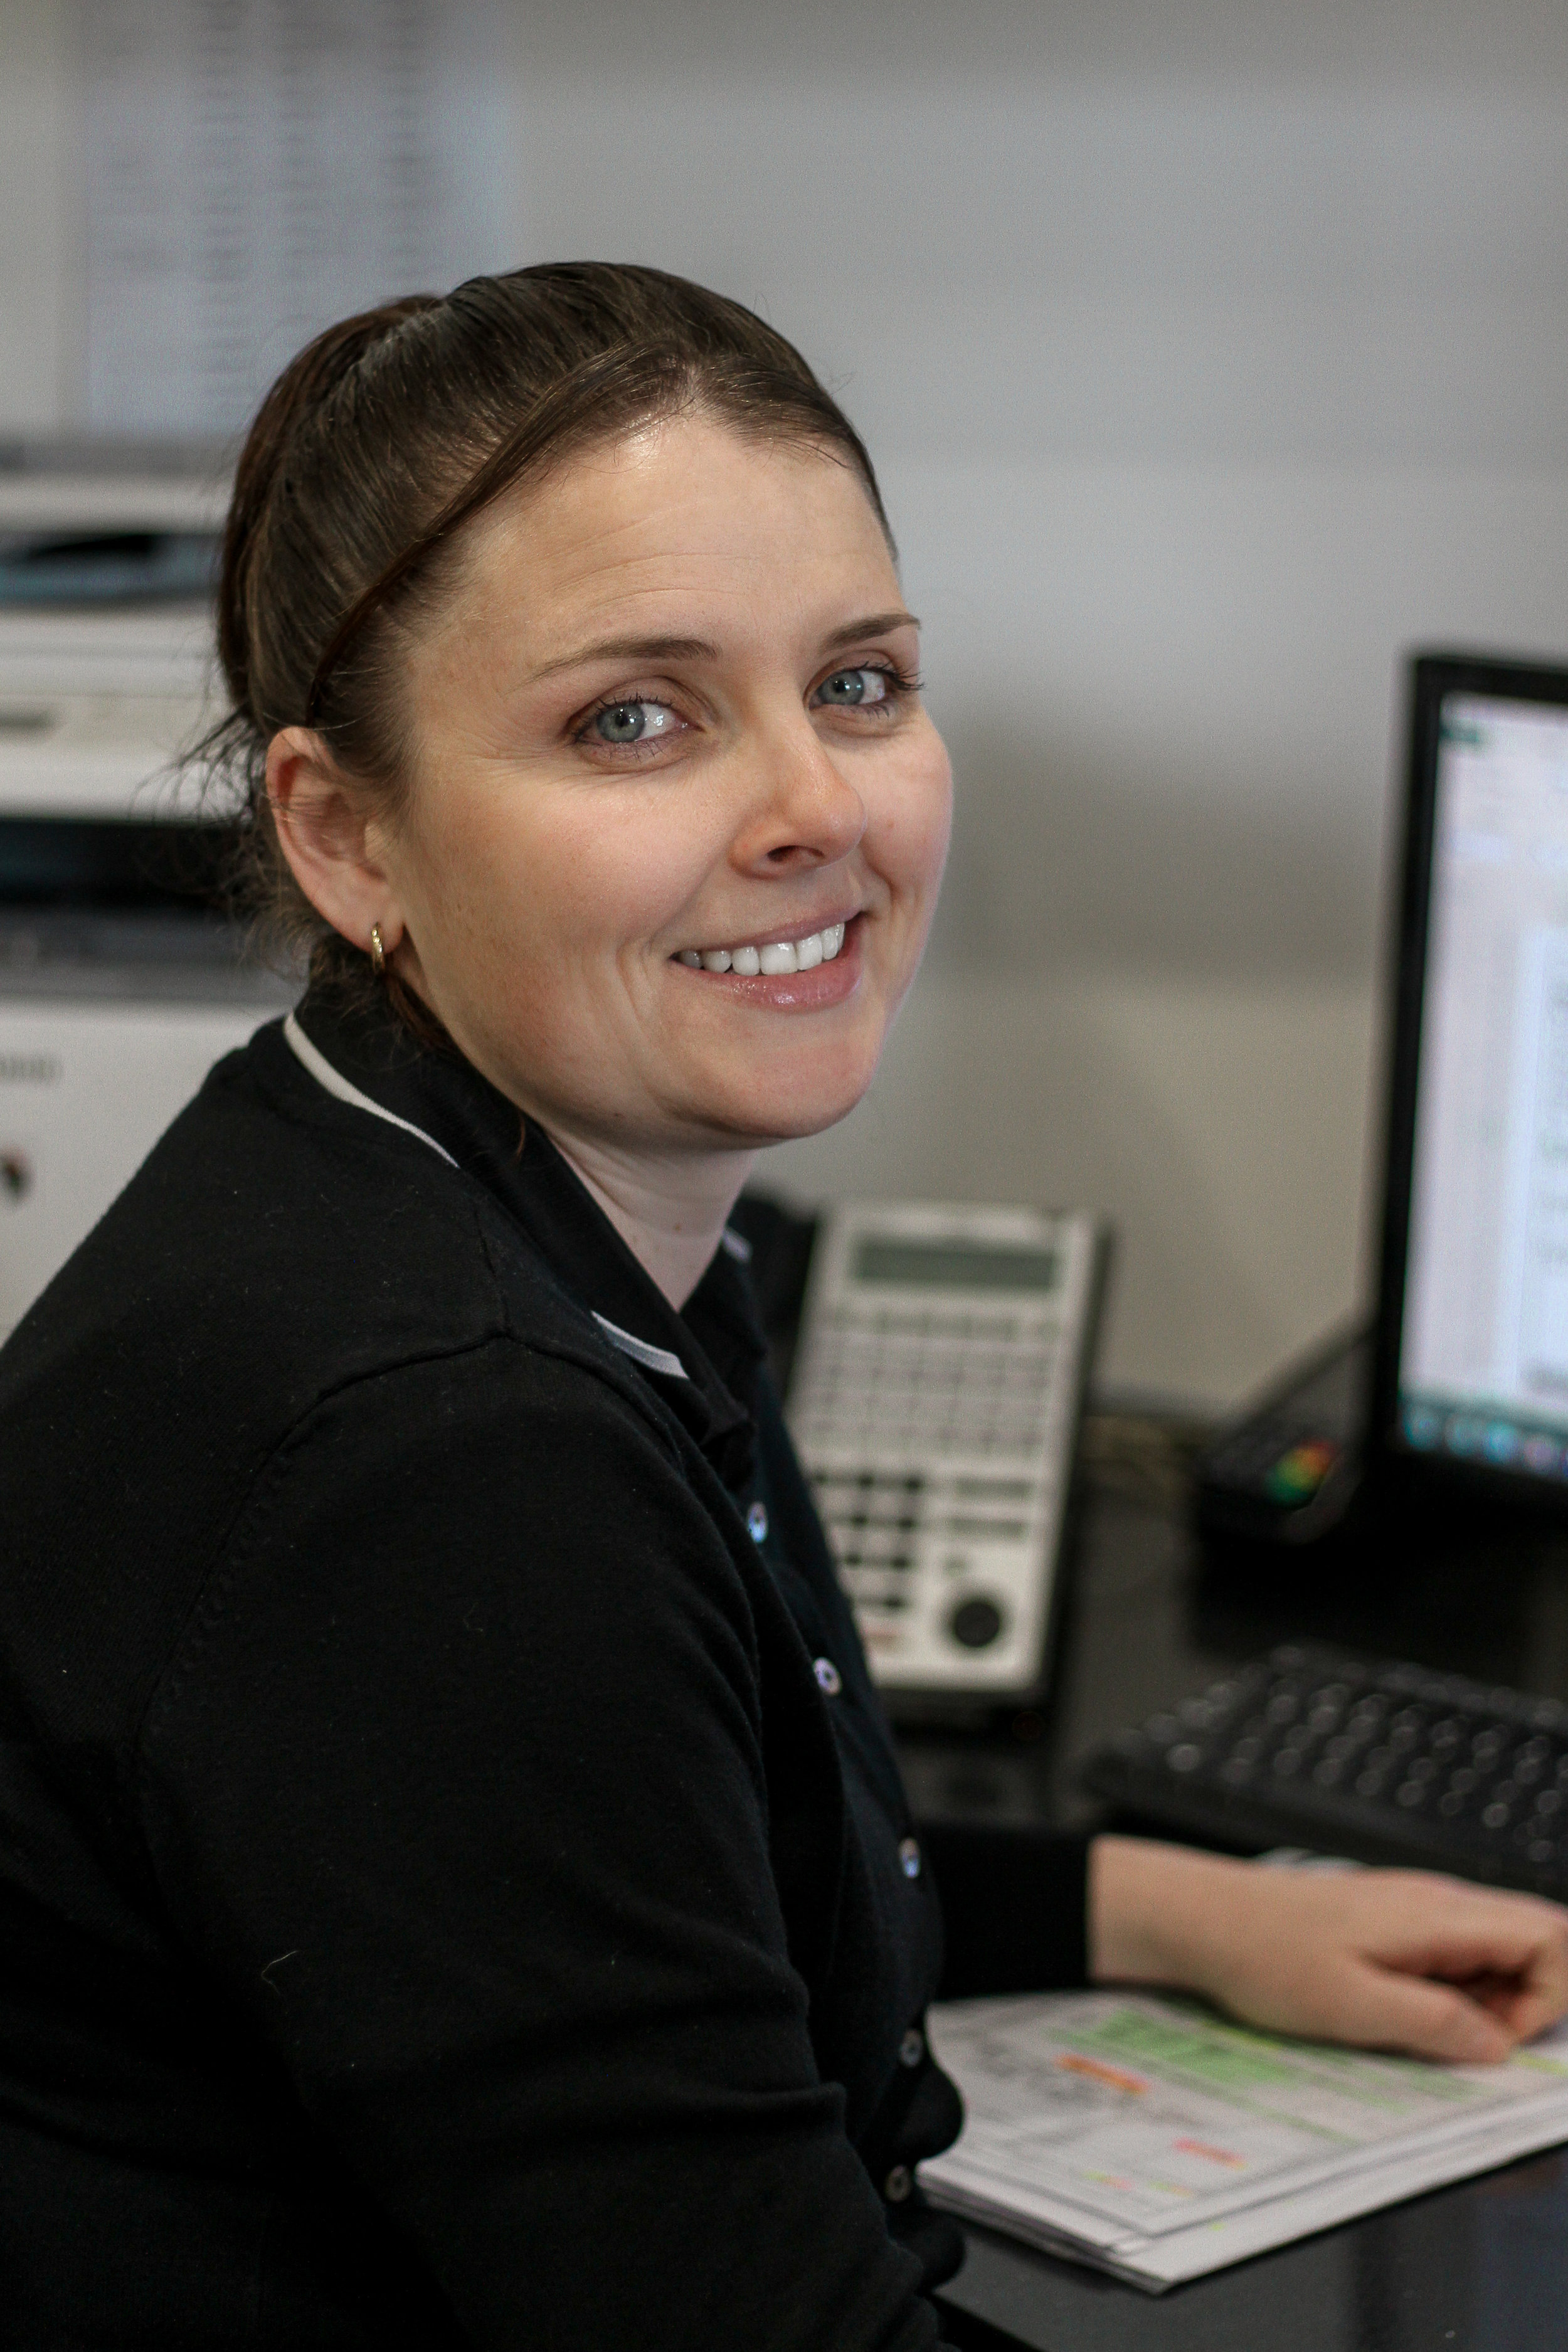 Amanda James- Receptionist - Amanda is the first friendly face you see when you visit our showroom and the helpful voice on the other end of the phone. Amanda's experience in business administration has been a huge asset to our company over the last few years